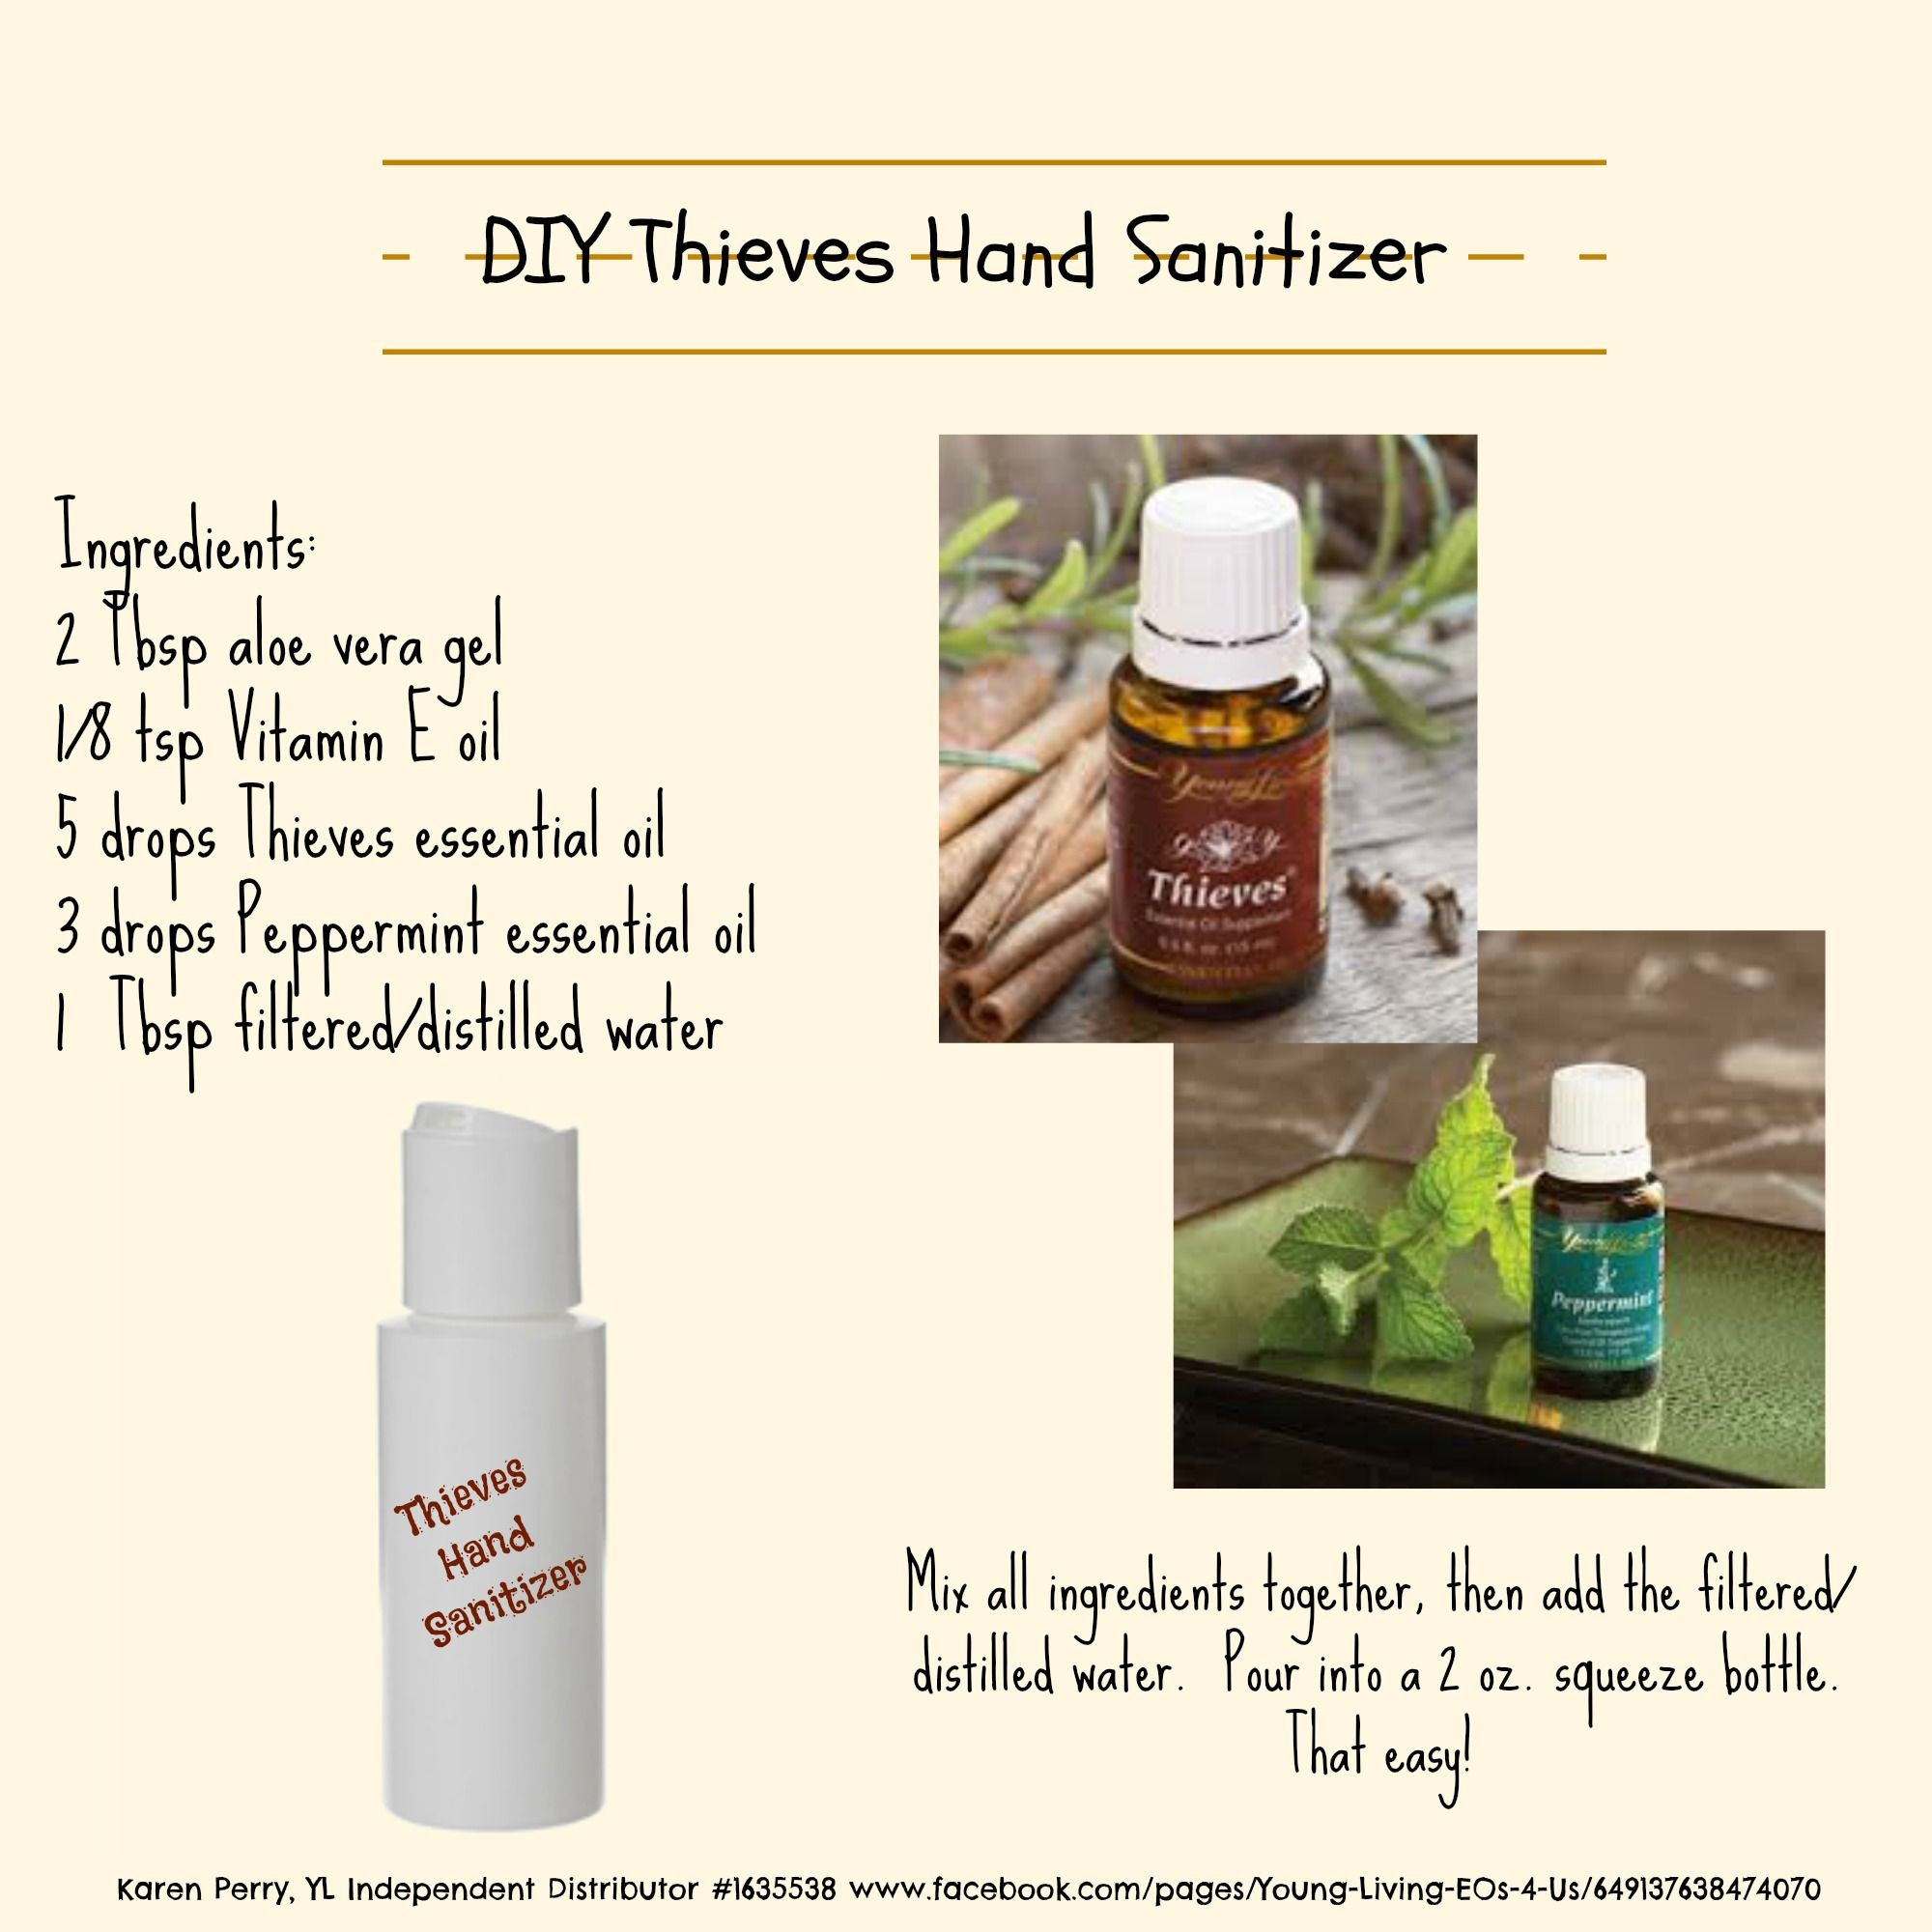 Diy Thieves Hand Sanitizer For More Information On How You Can Use